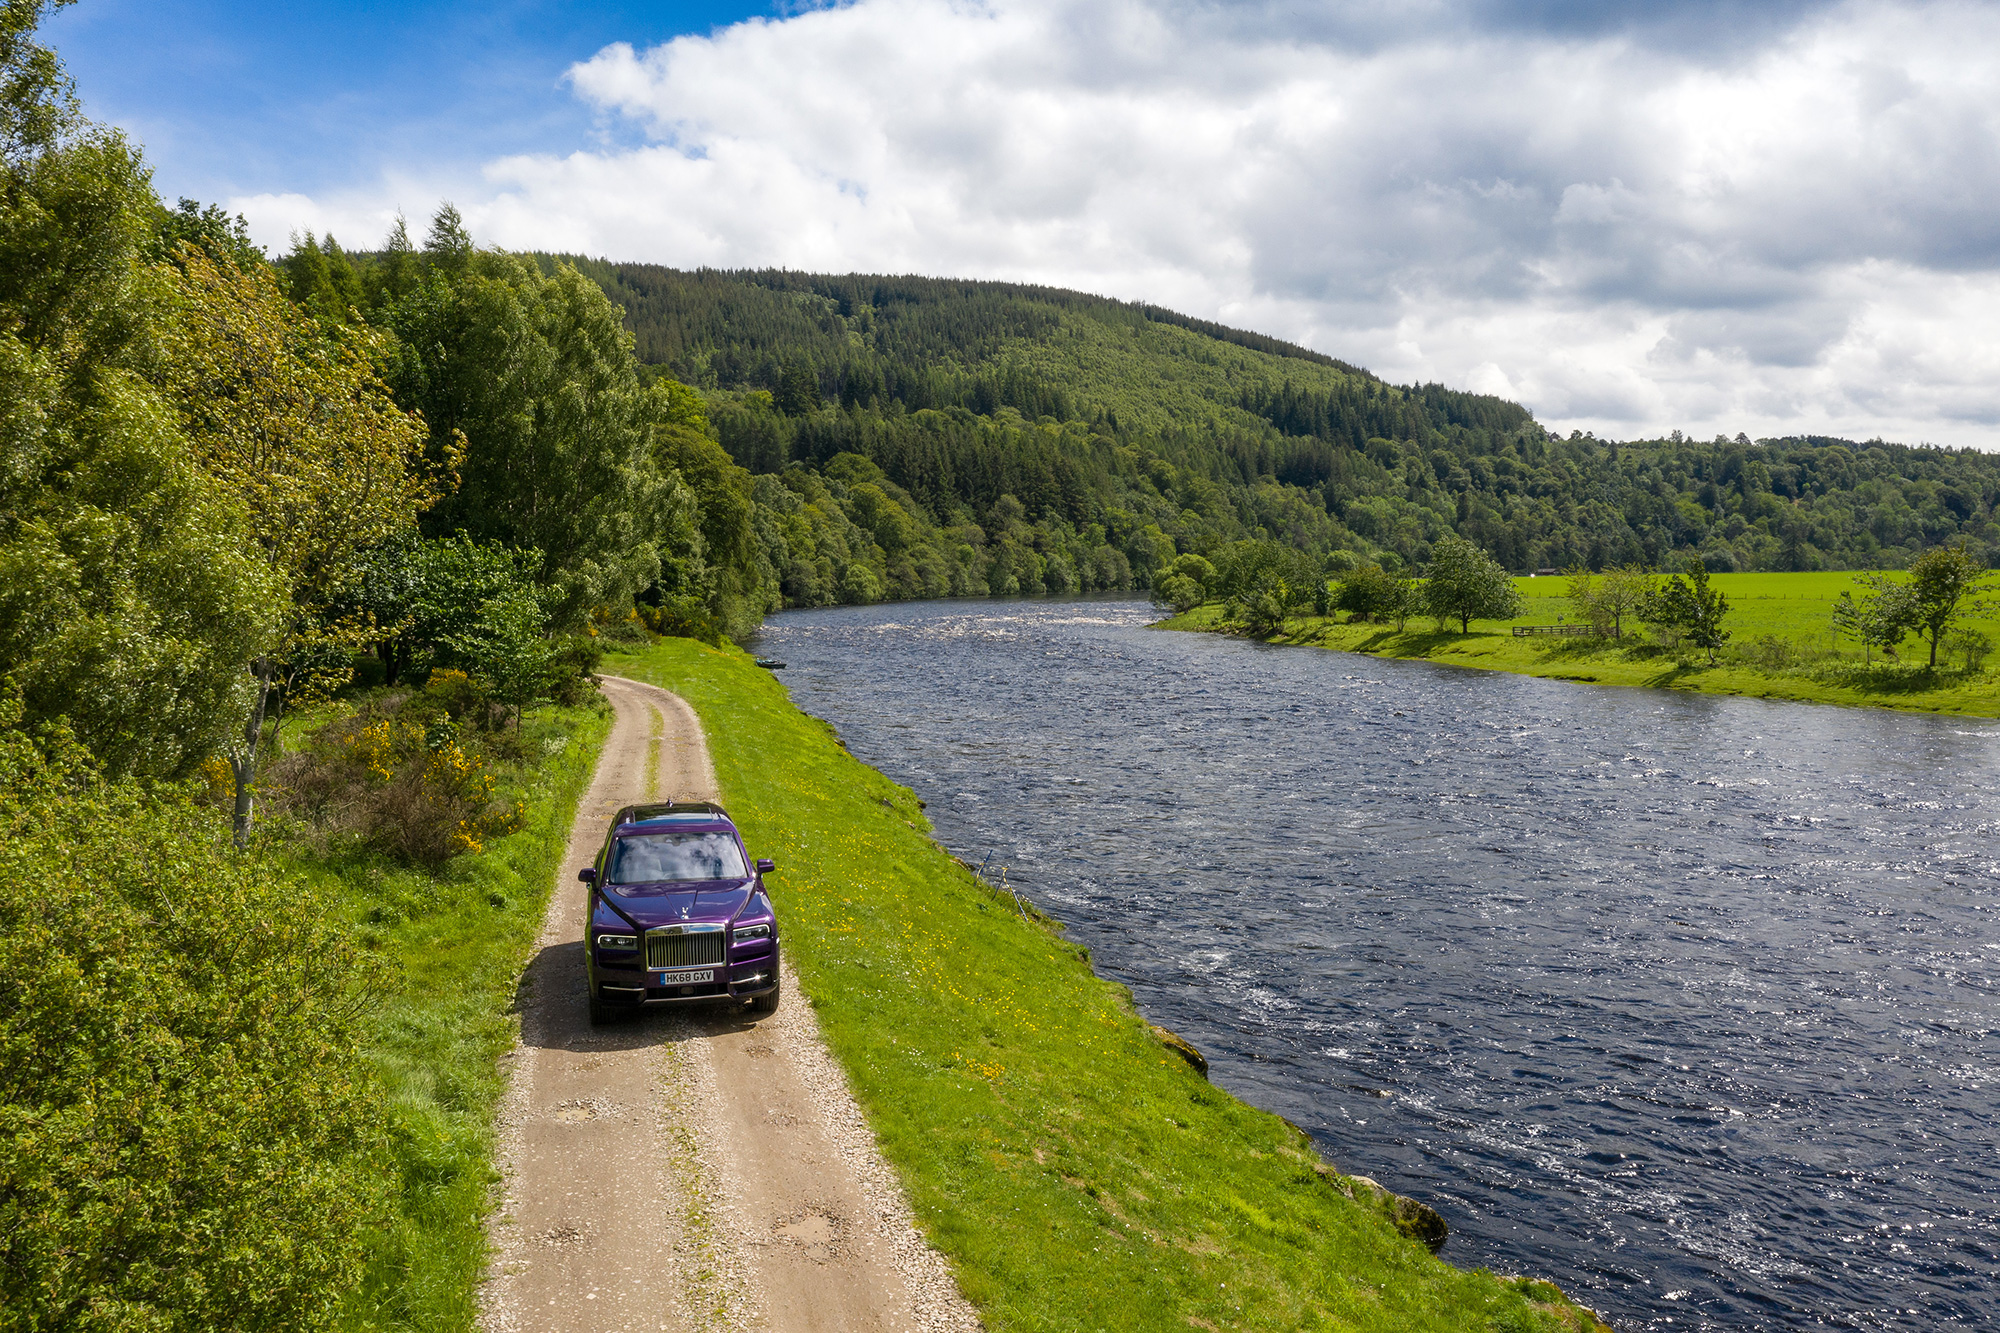 Test driving the Rolls-Royce Cullinan in Scotland